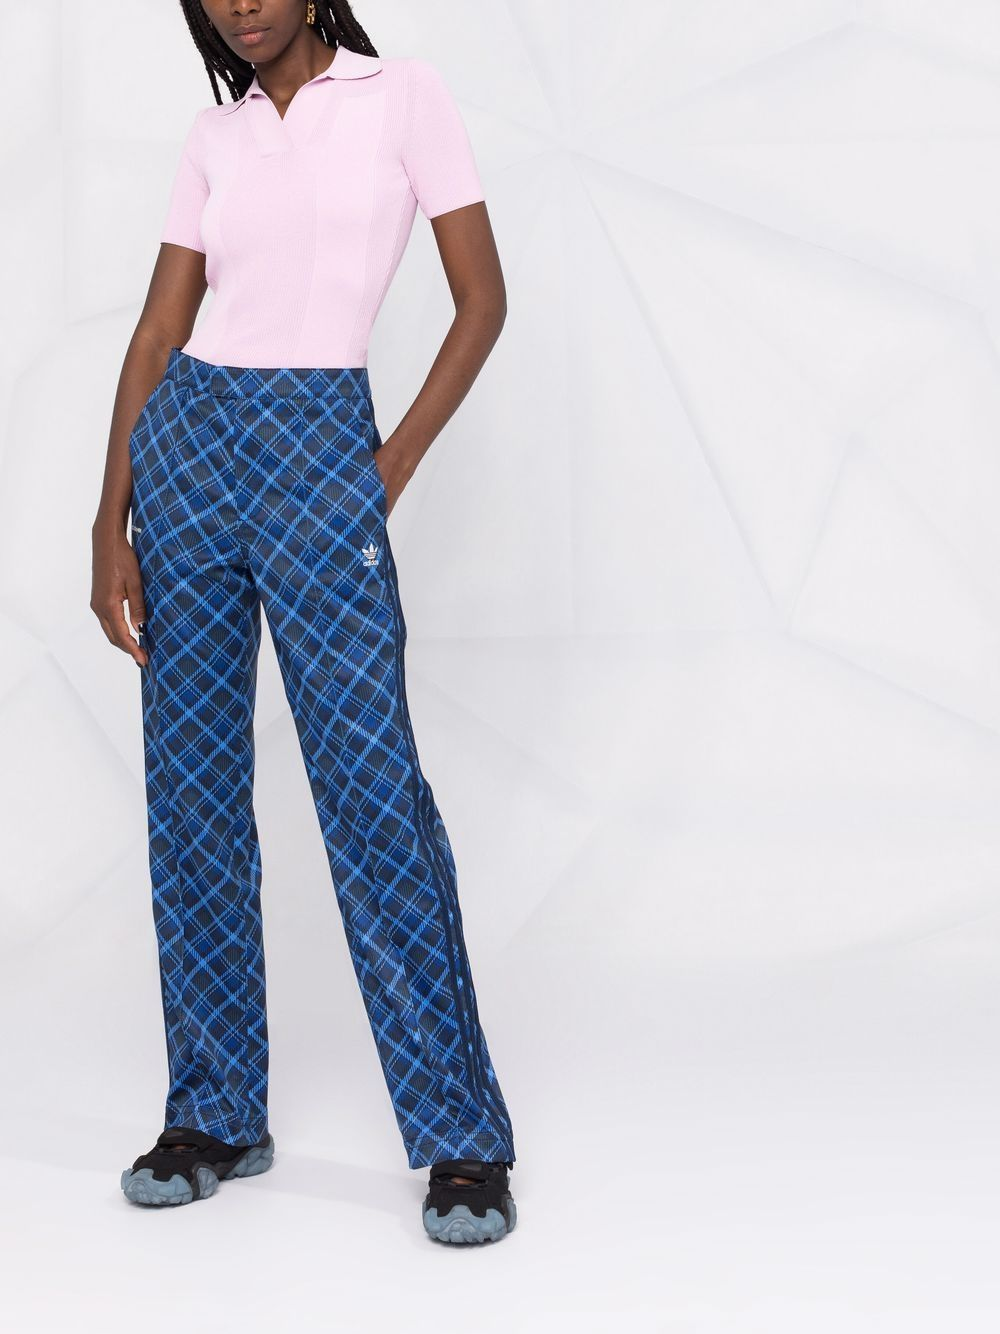 Picture of Adidas X Wales Bonner   Pants